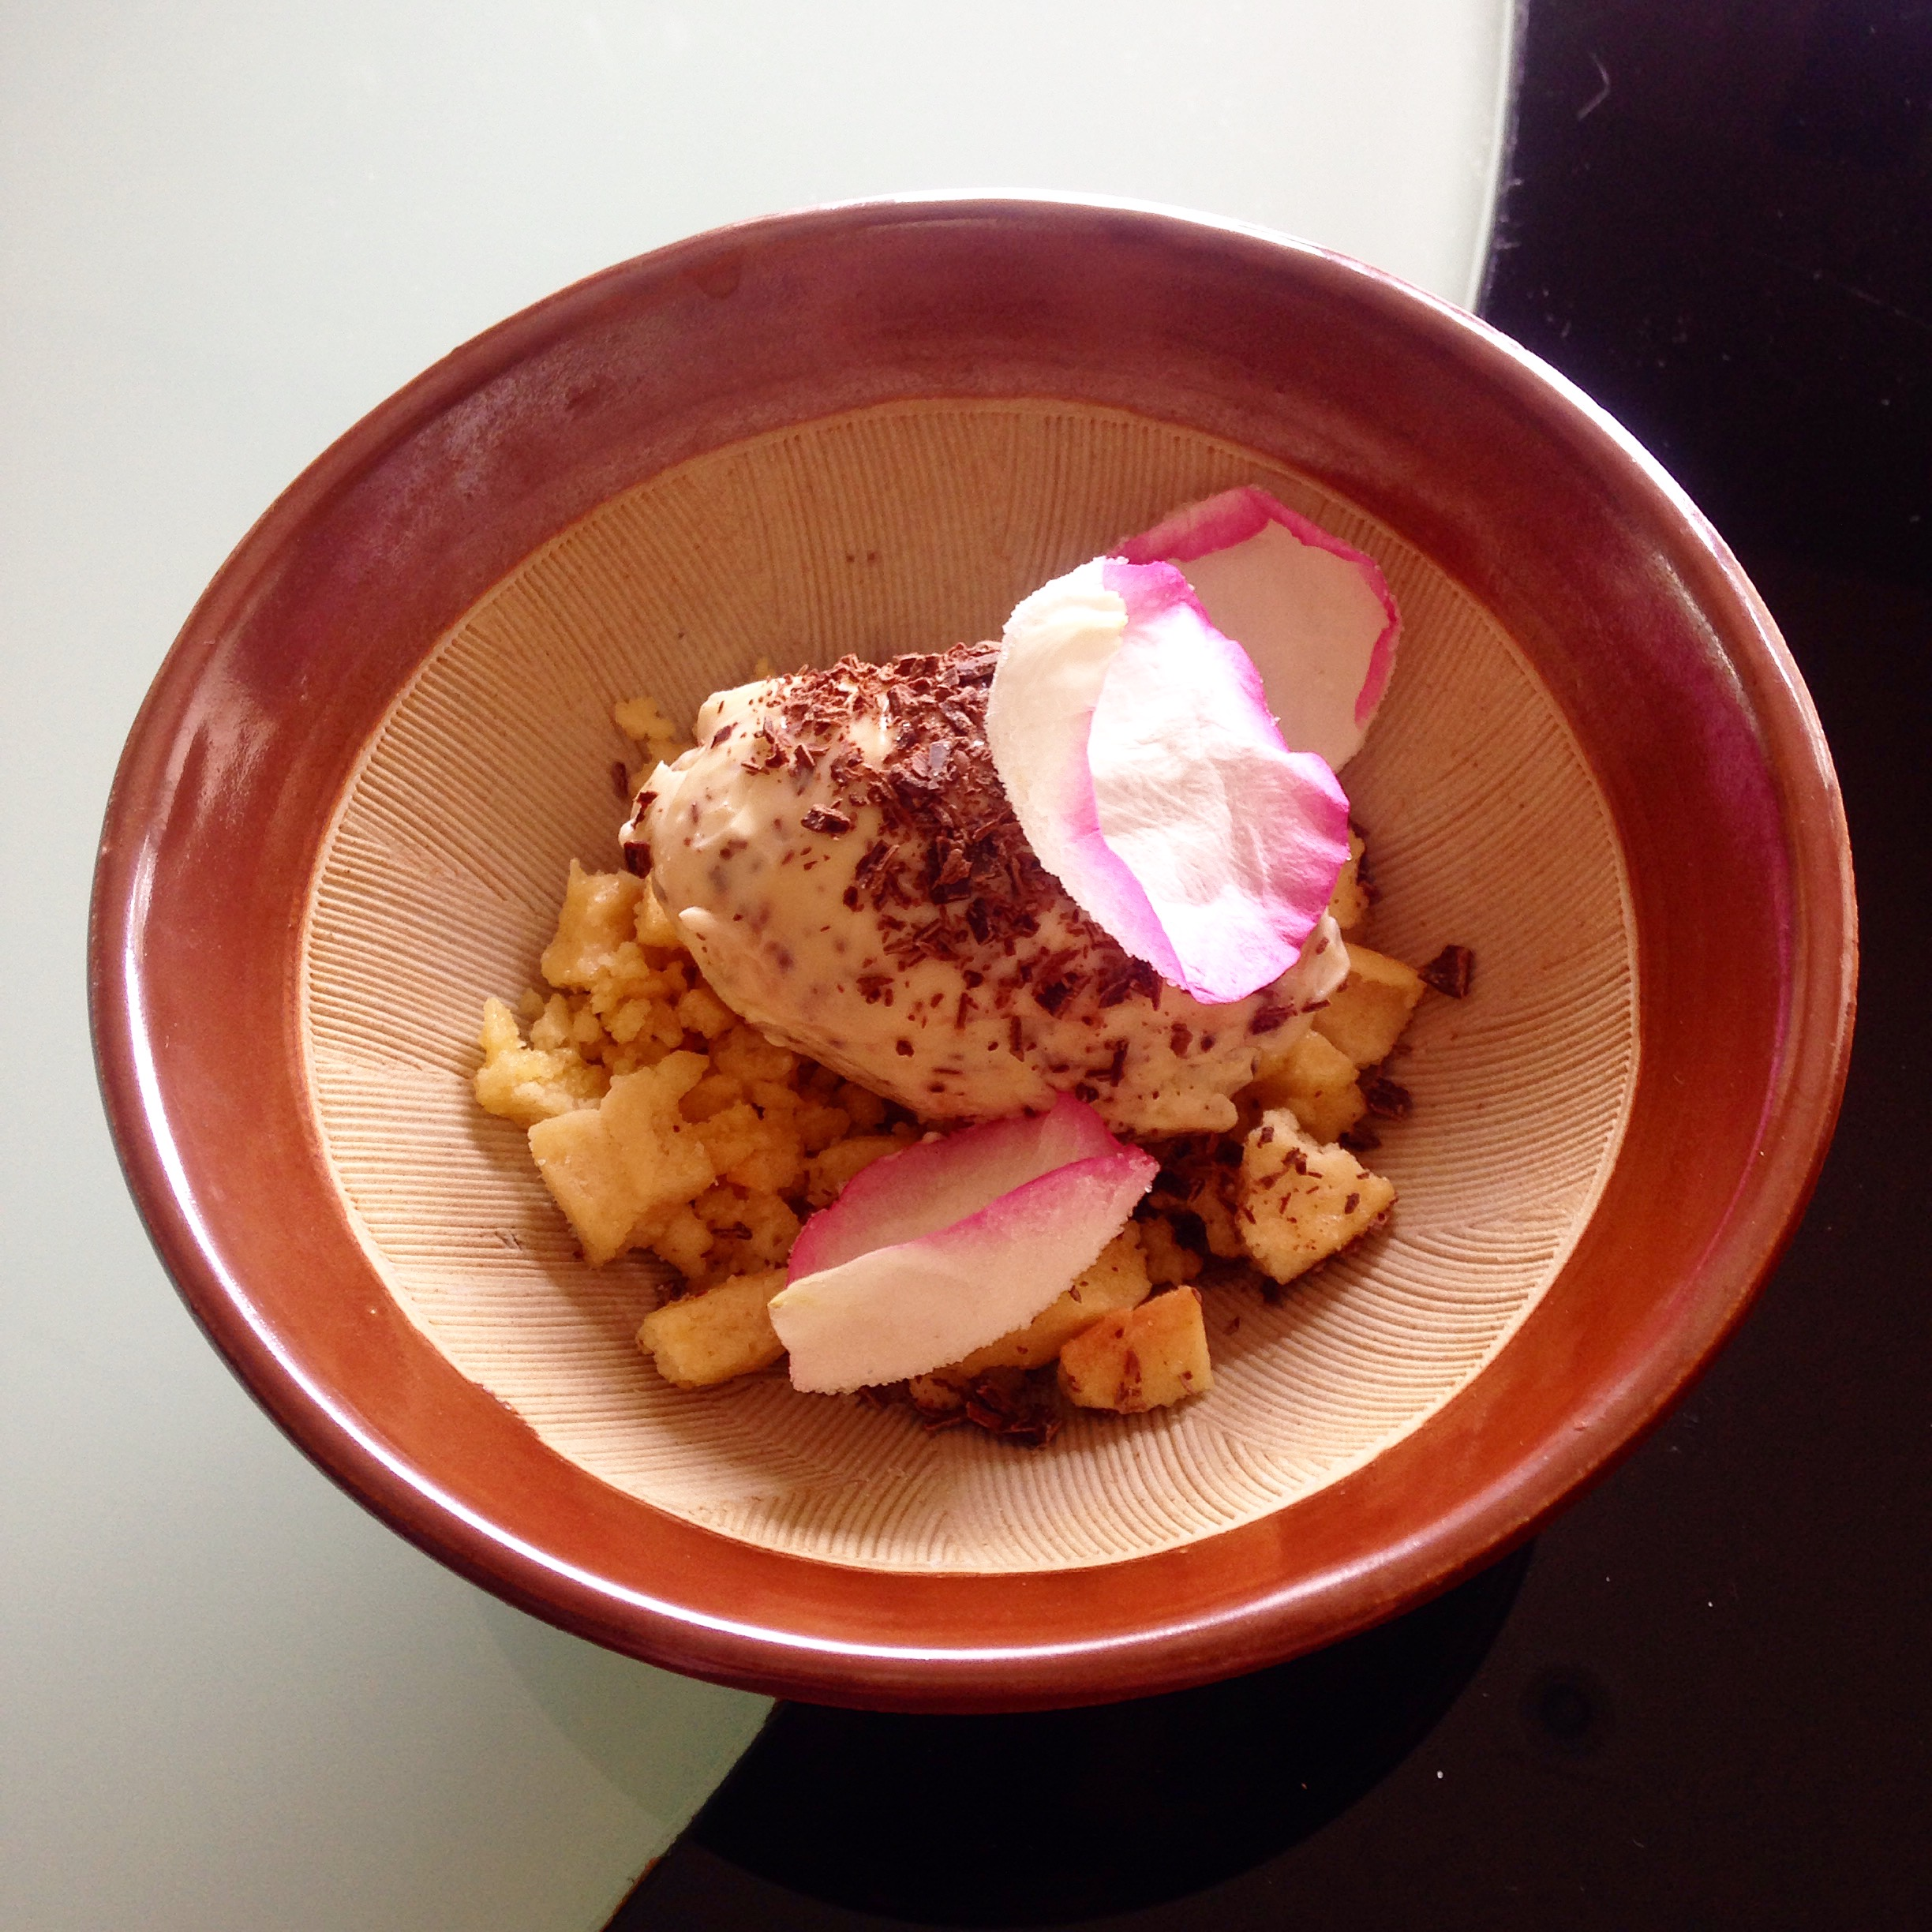 Deconstructed Rose Cheesecake